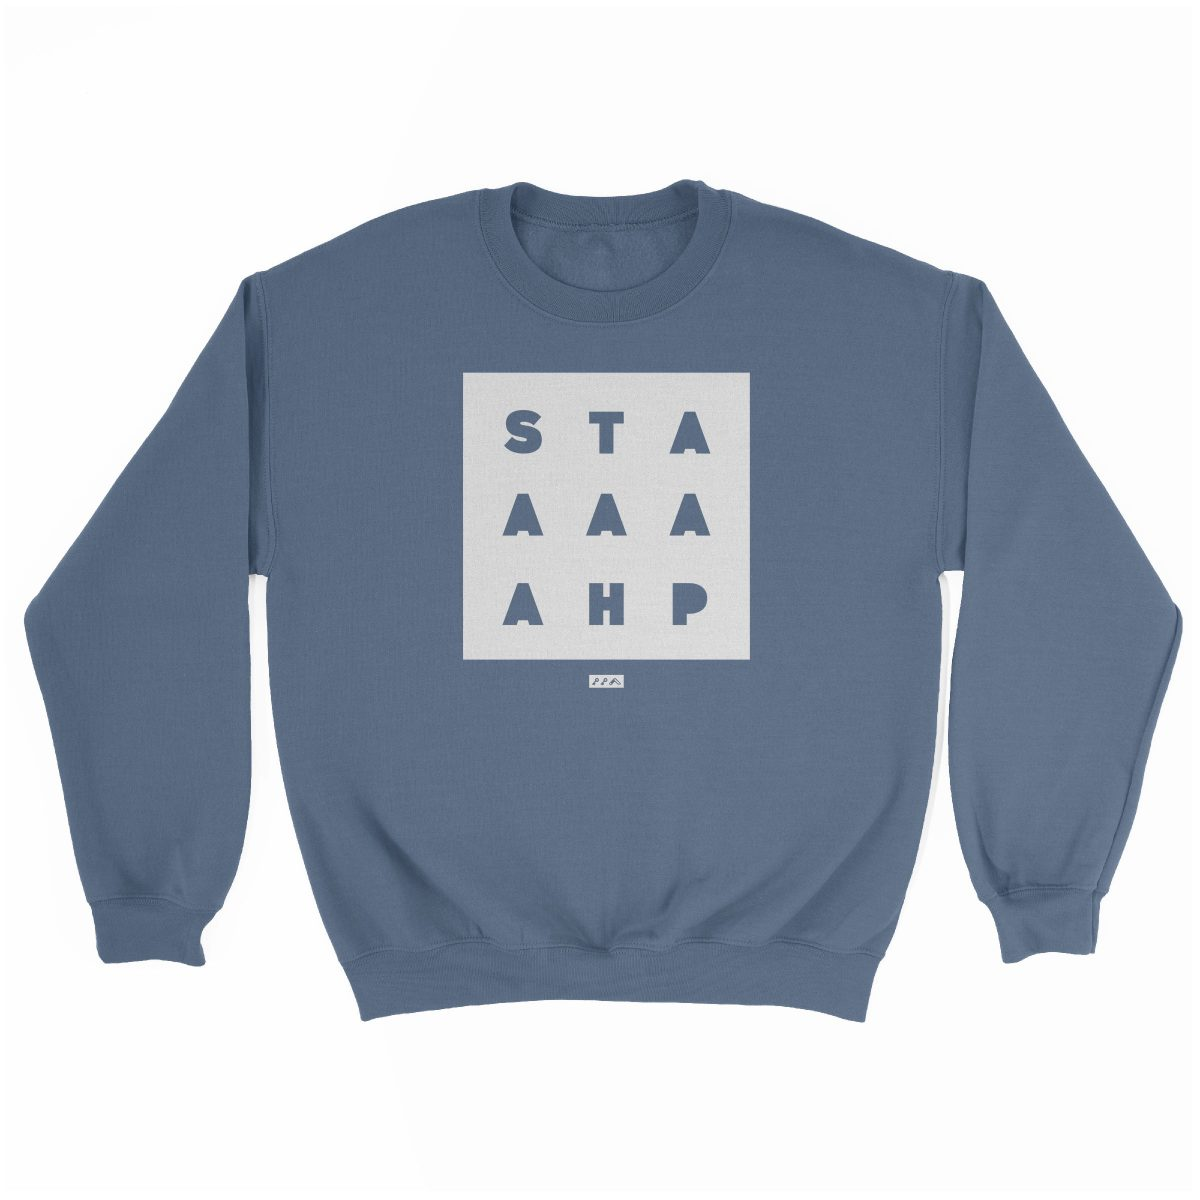 """STAAAAAHP"" funny philly slang sweatshirt in indigo"